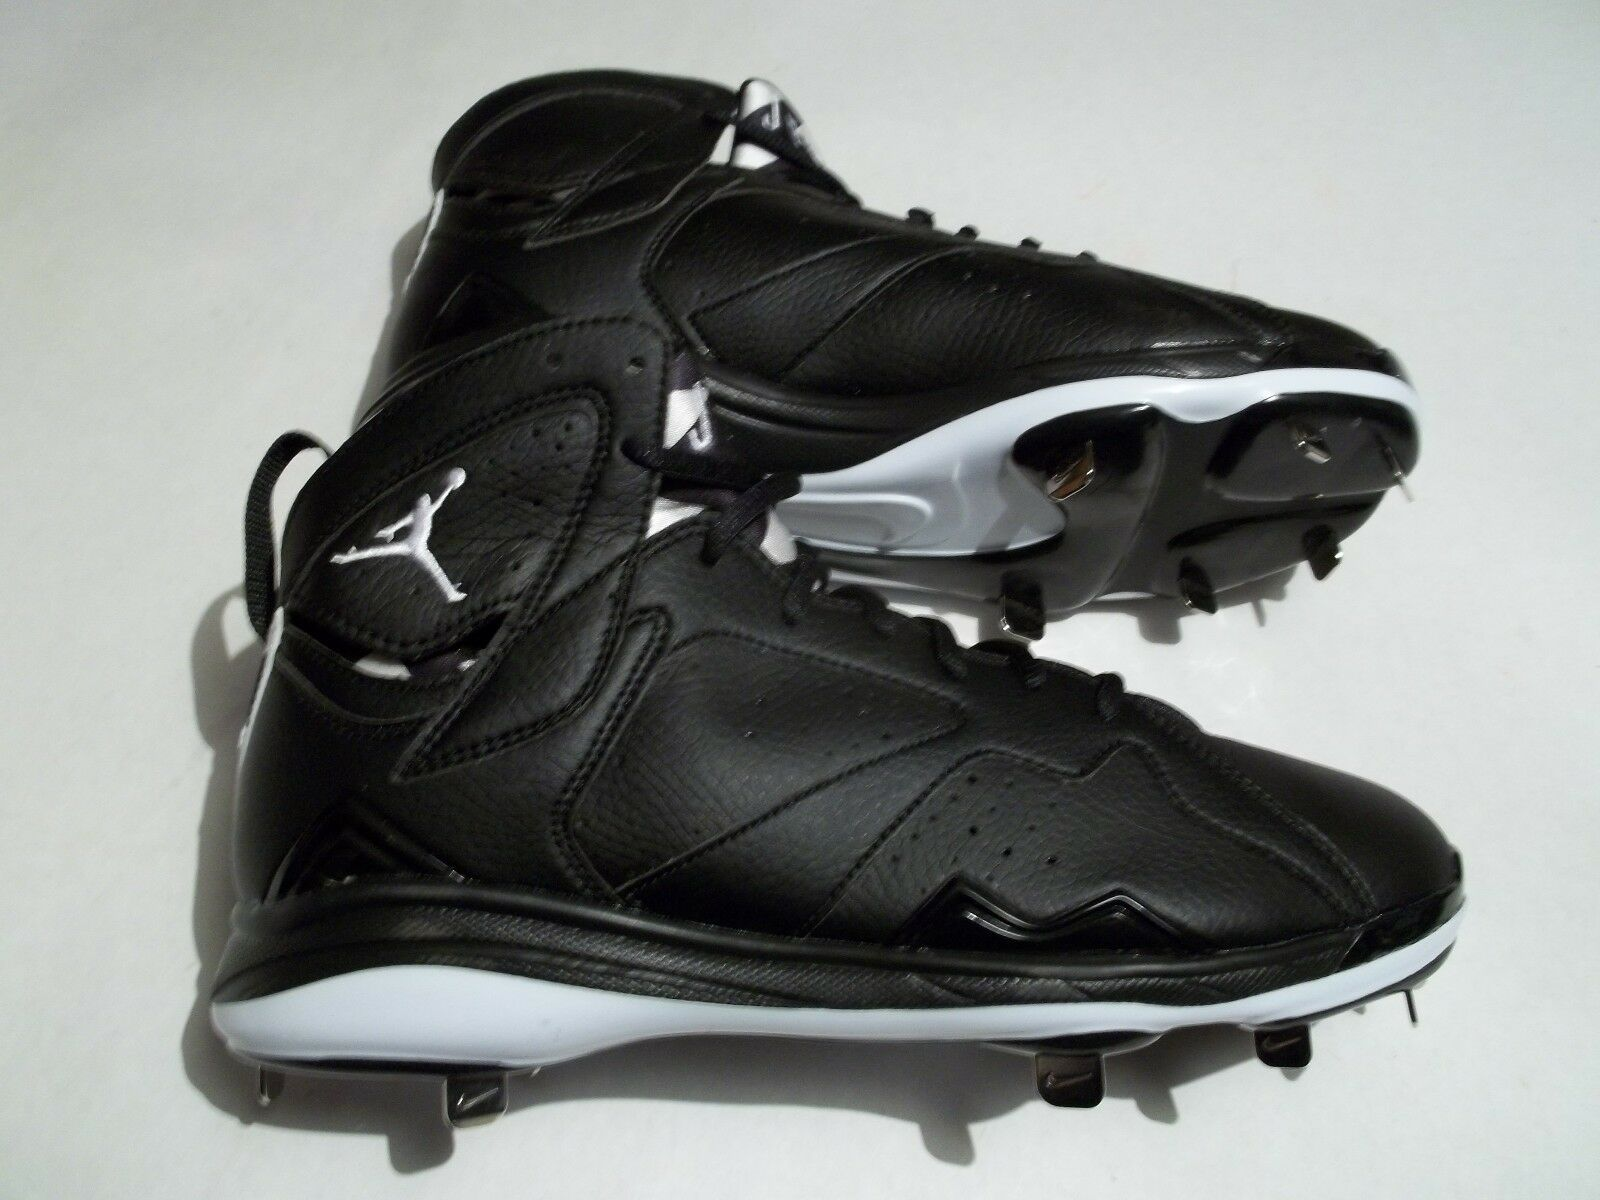 New Nike Air Jordan 7 Retro Metal Baseball Cleats Black White 684943-010 New shoes for men and women, limited time discount